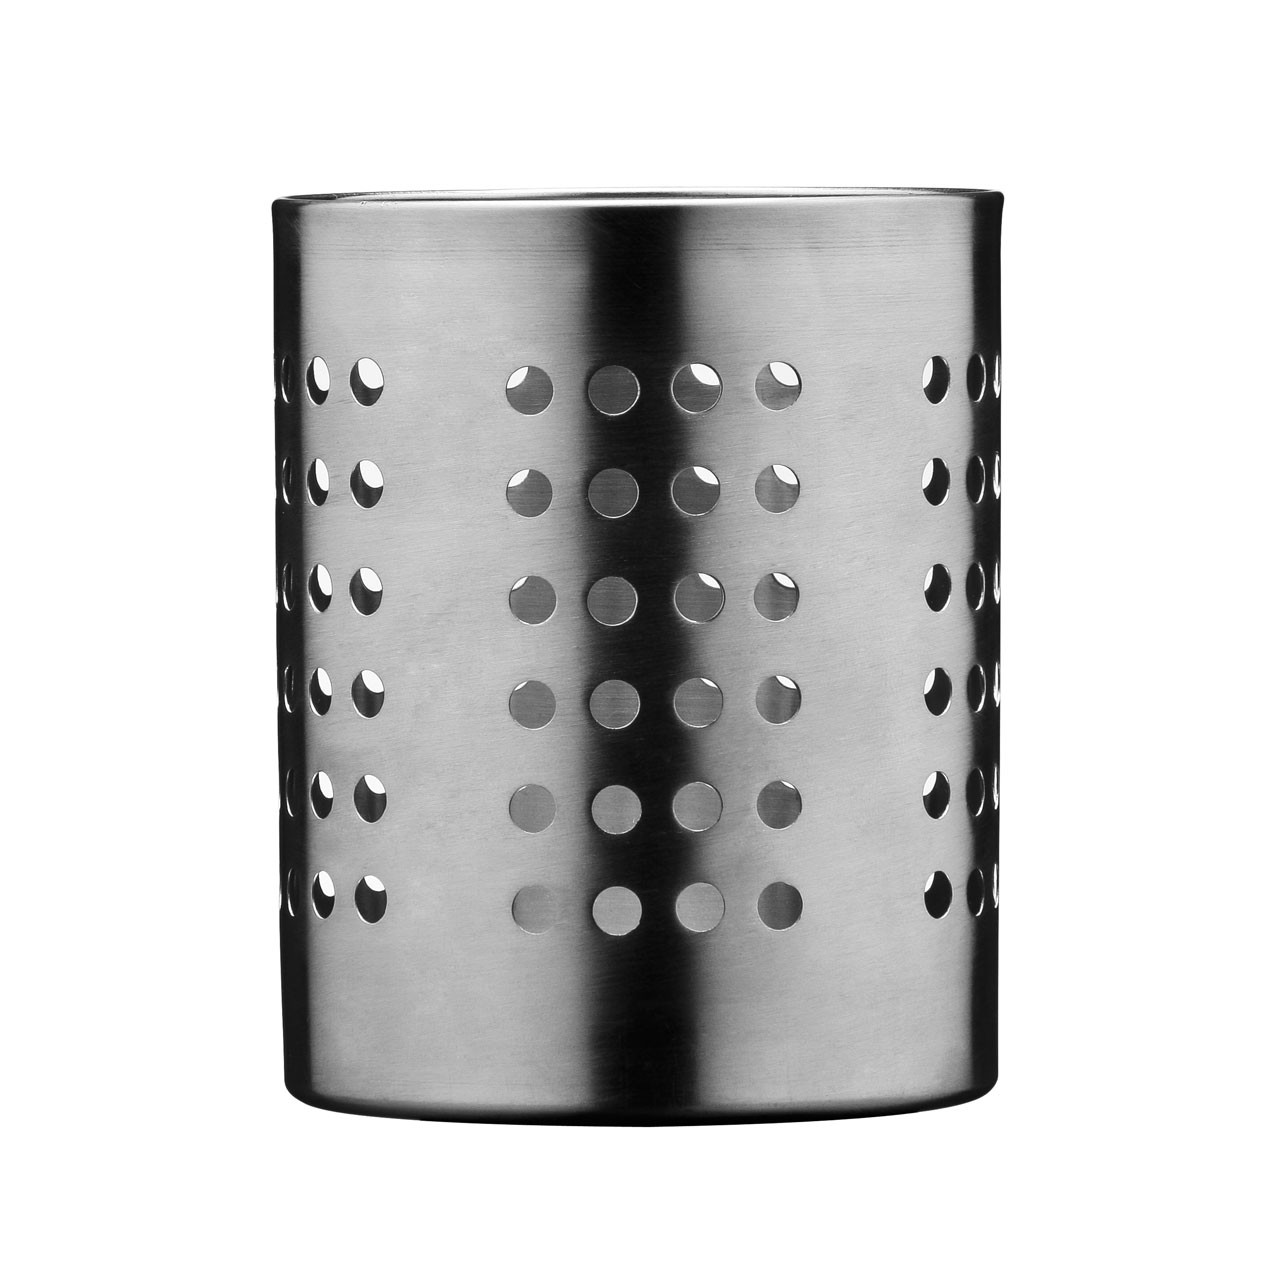 Prime Furnishing Cutlery Caddy, Brushed Stainless Steel